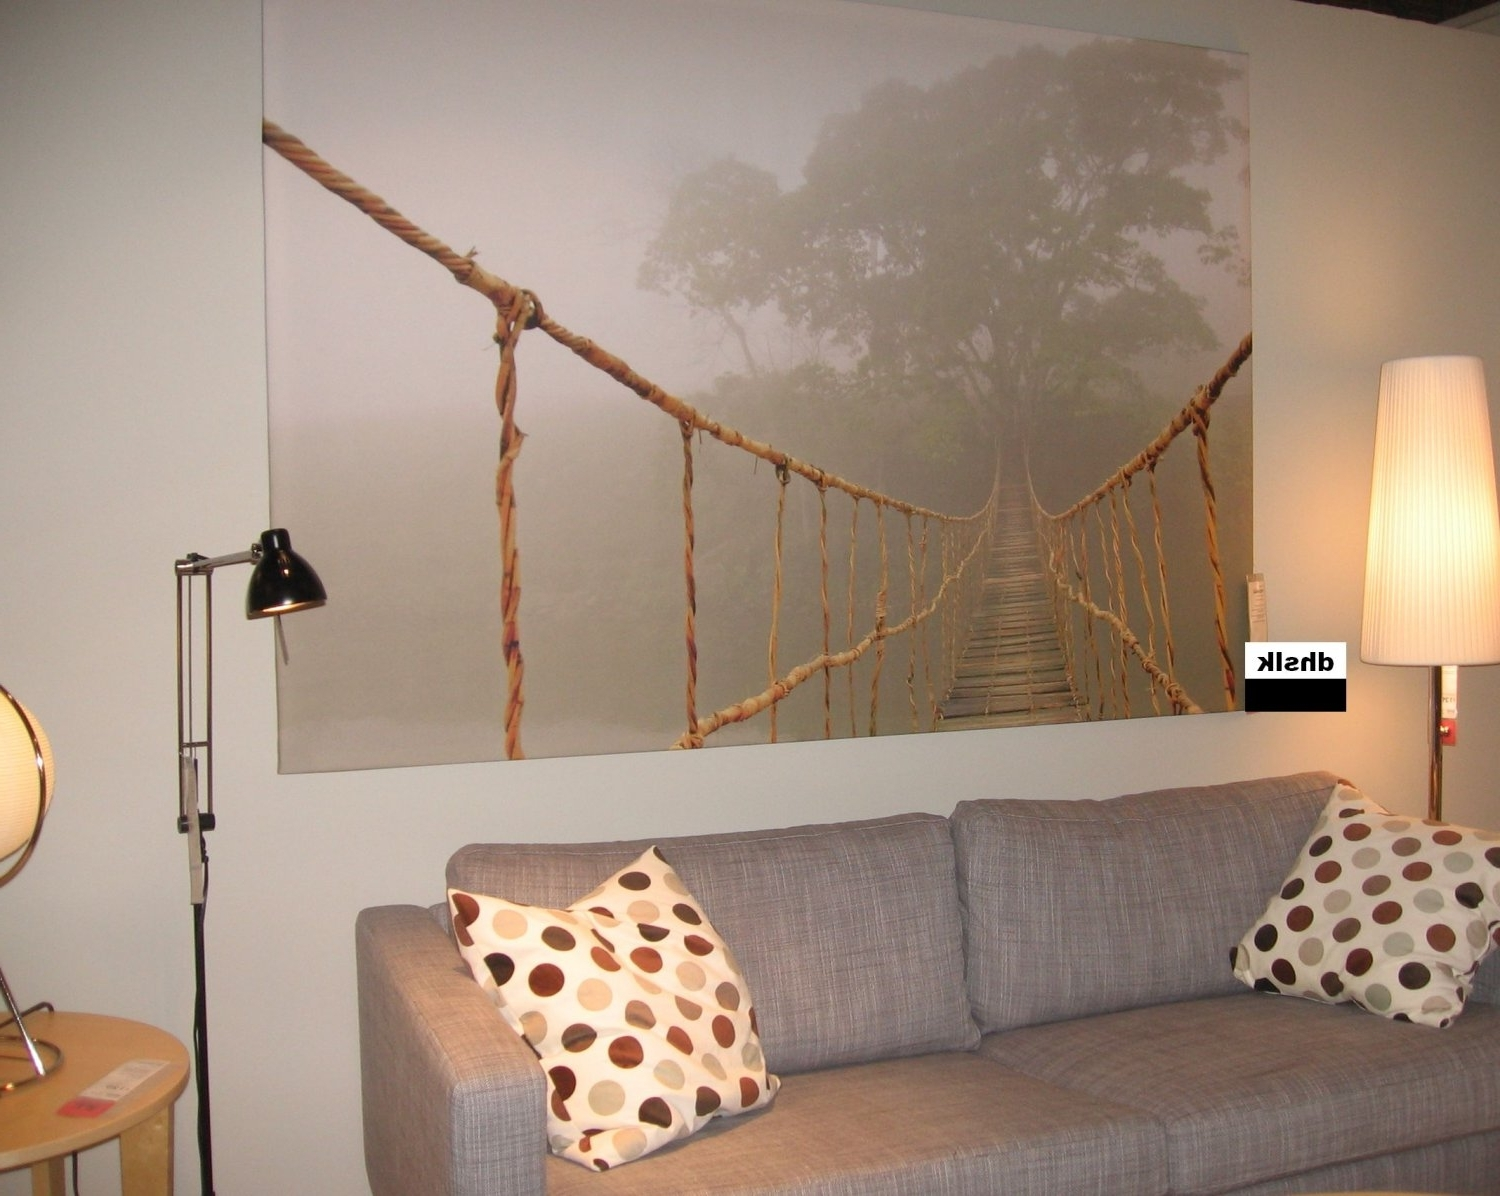 Ikea Canvas Wall Art Intended For Most Up To Date Ikea Premiar Jungle Journey Wall Art Print Huge Canvas Tree Bridge (Gallery 14 of 15)